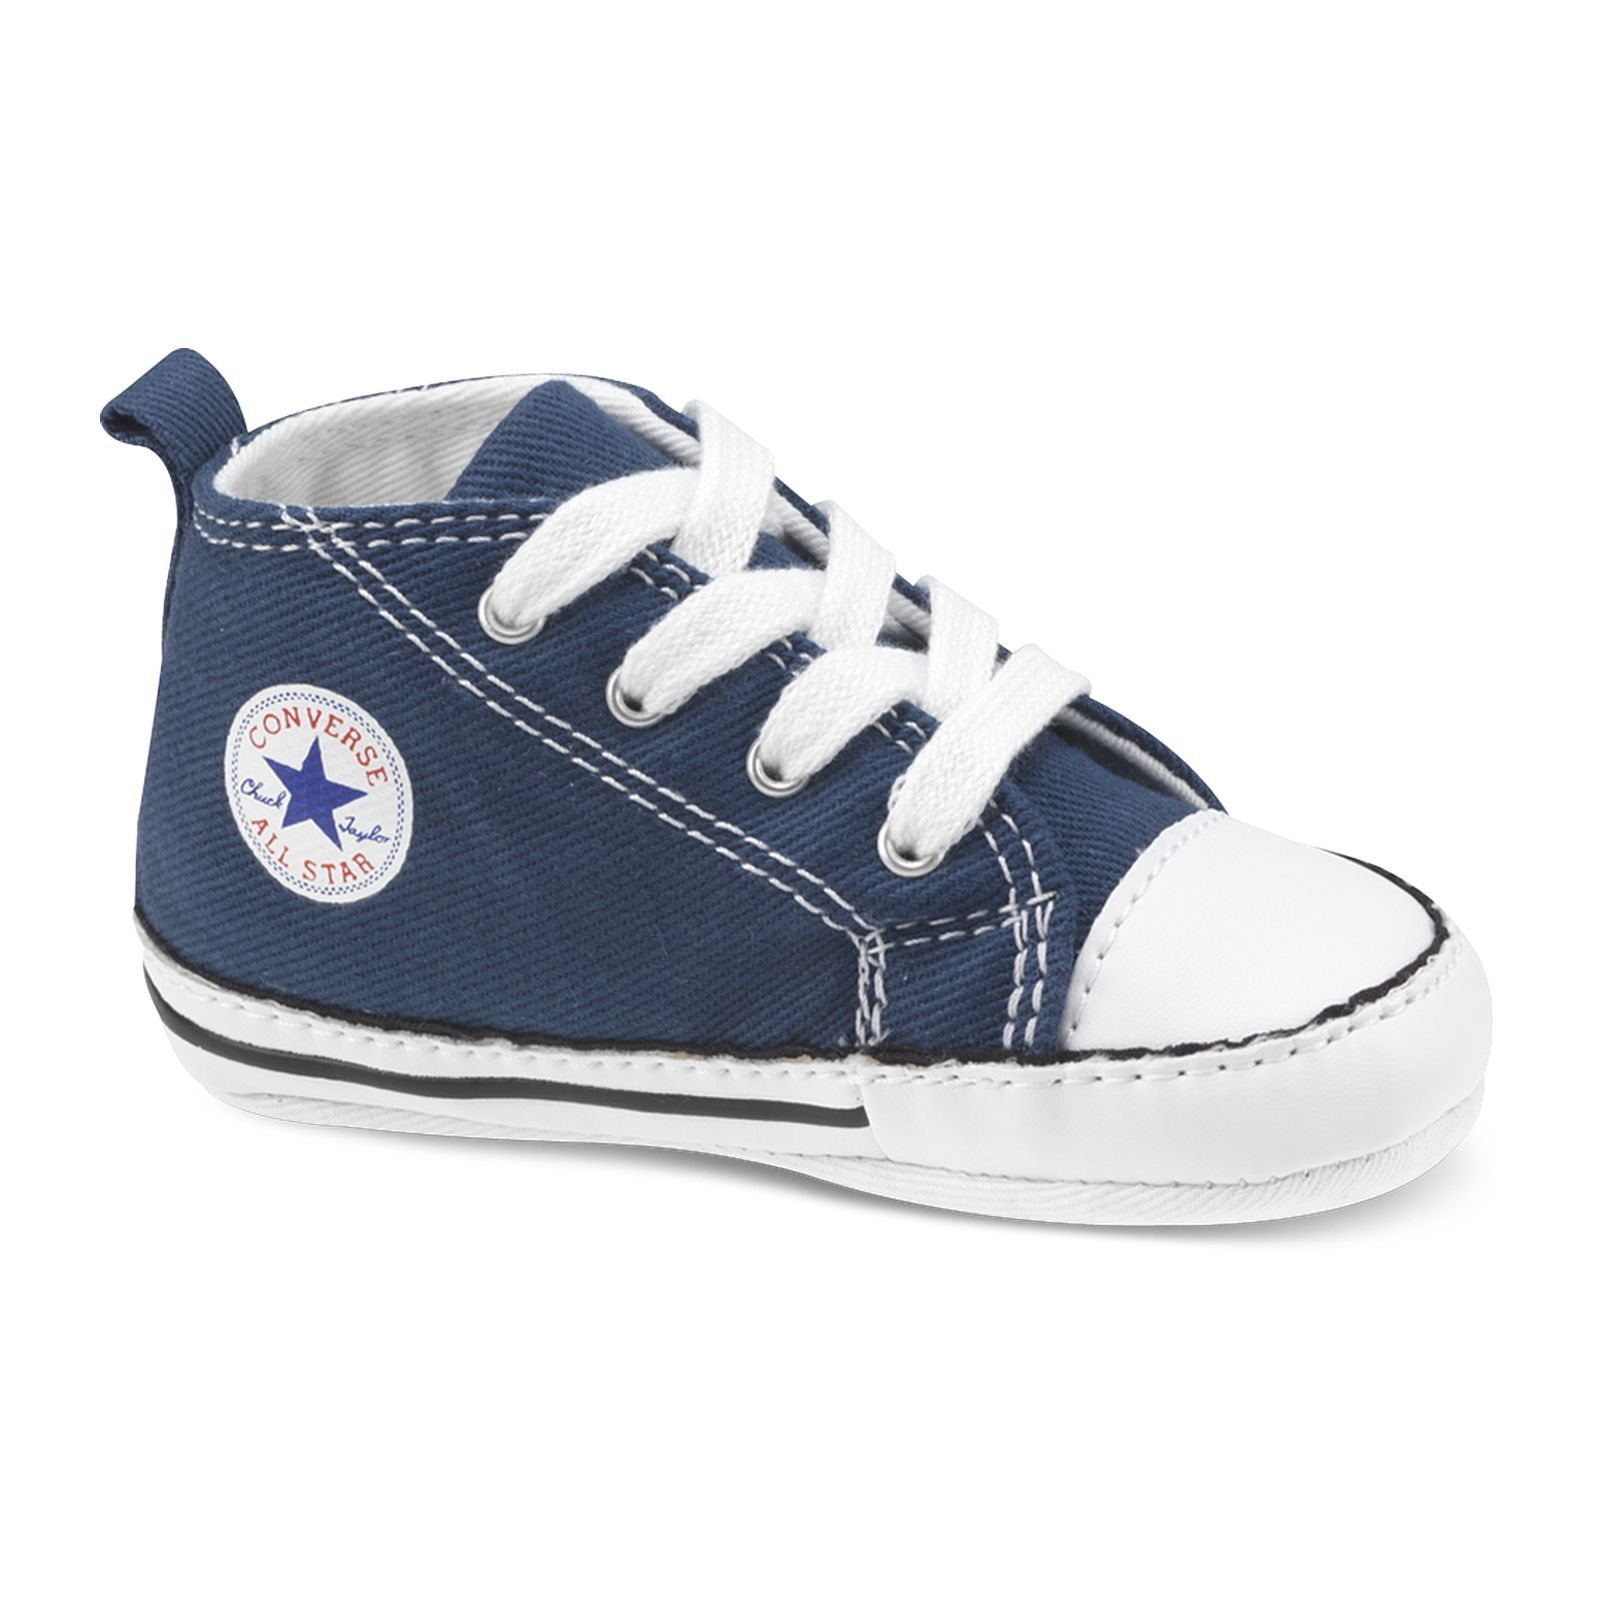 converse firt star hi baby baskets bleu marine brandalley. Black Bedroom Furniture Sets. Home Design Ideas